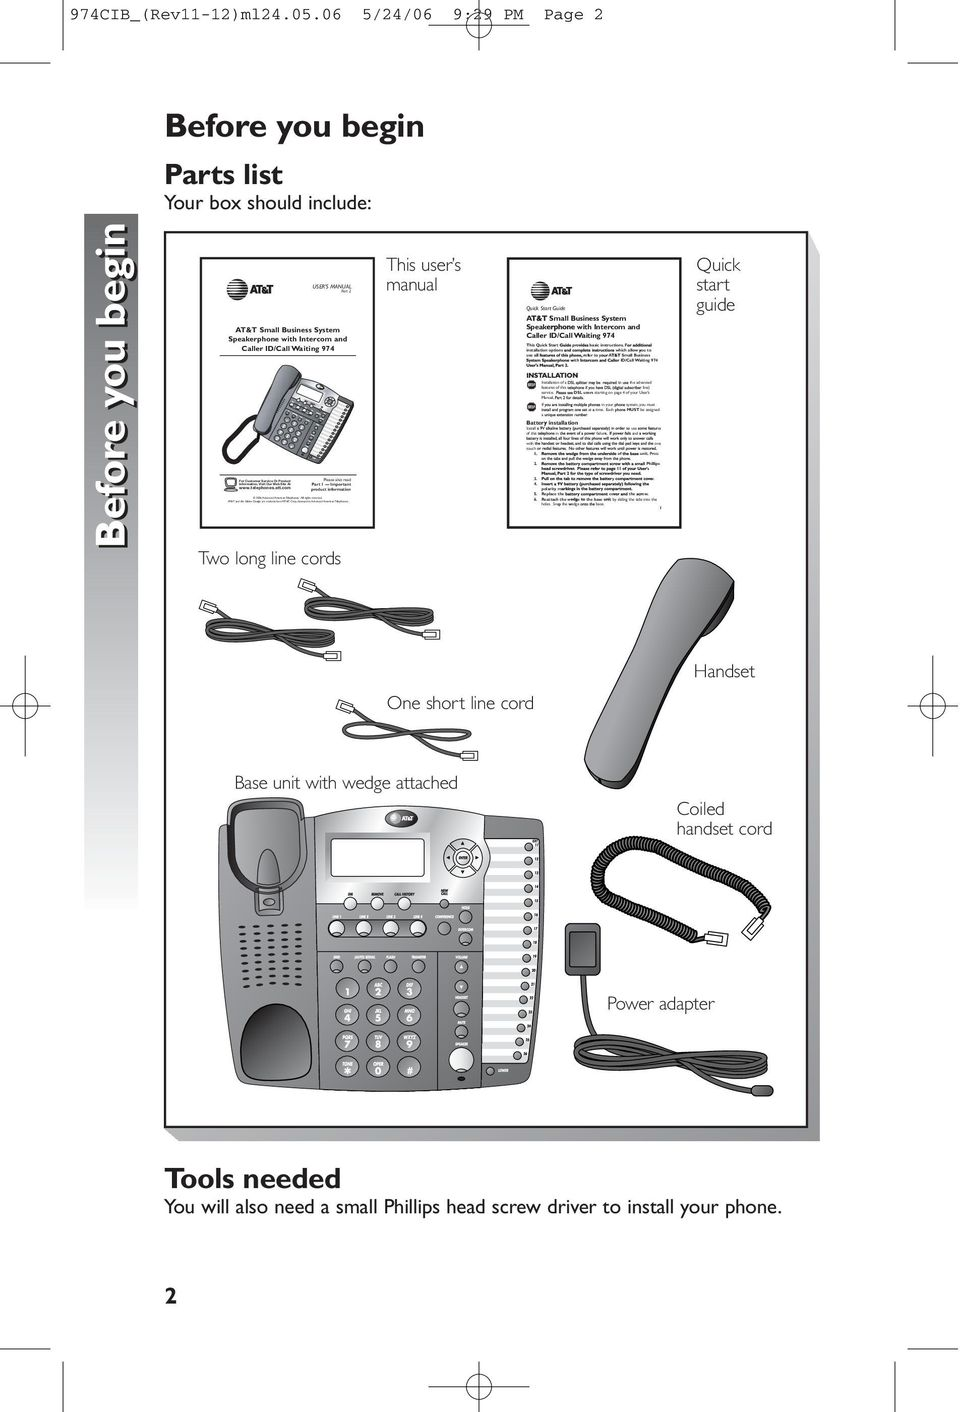 Intercom and Caller ID/Call Waiting 974 Information, Visit Our Web Site At www.telephones.att.com Please also read Part 1 Important product information 2006 Advanced American Telephones.